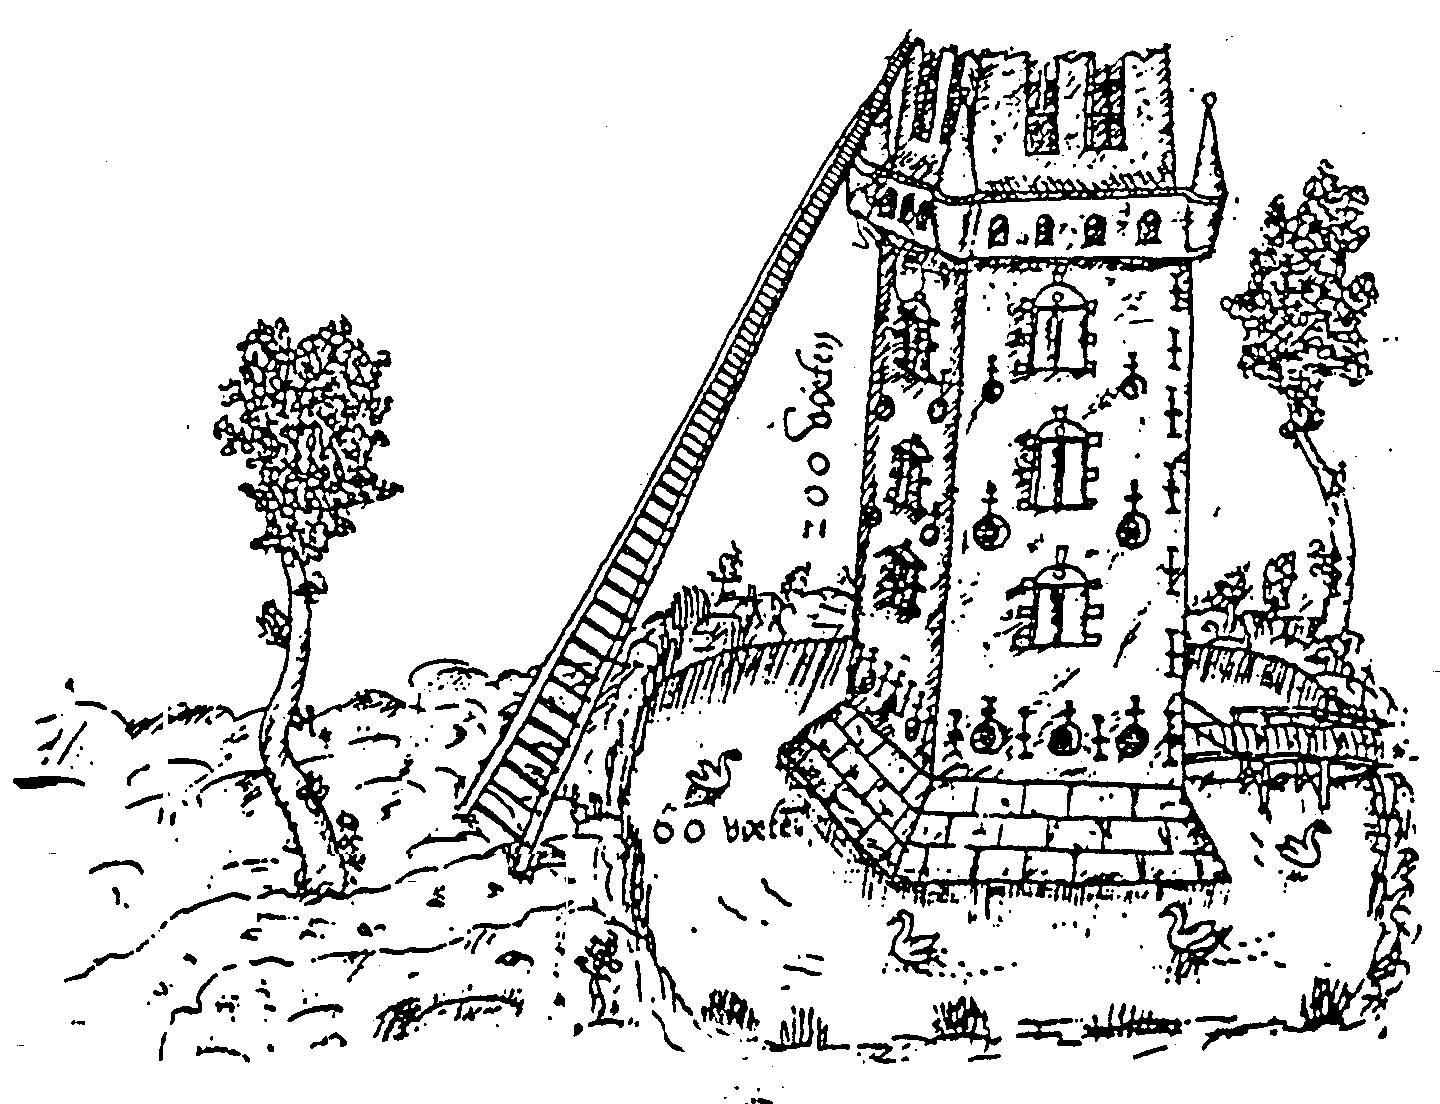 Peter van Halle, 1568 The length of a ladder is calculated